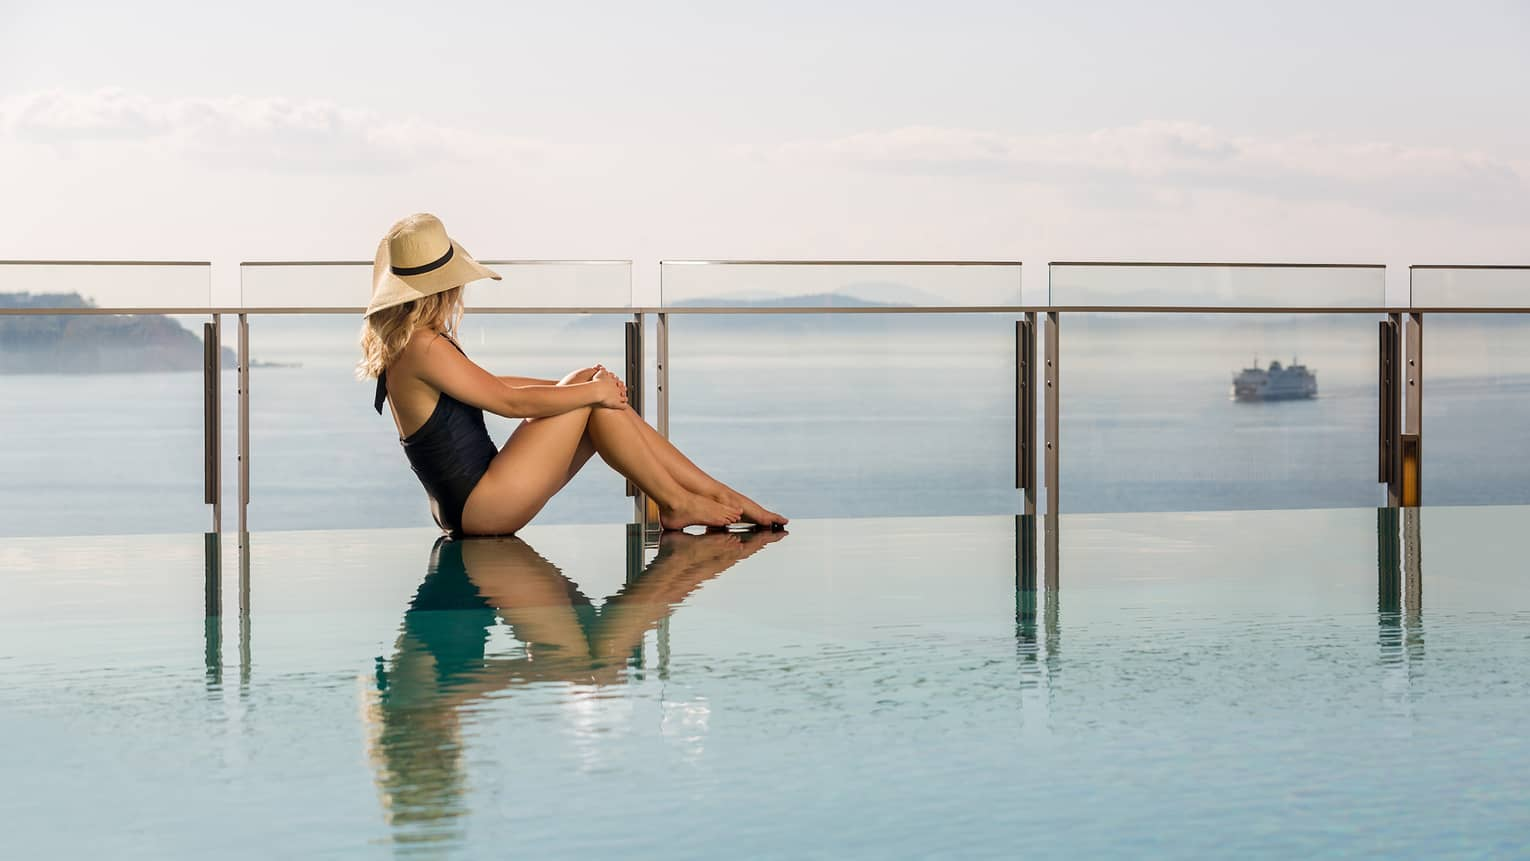 Woman in swimsuit, sunhat sits on pool deck in front of glass barrier, bay views